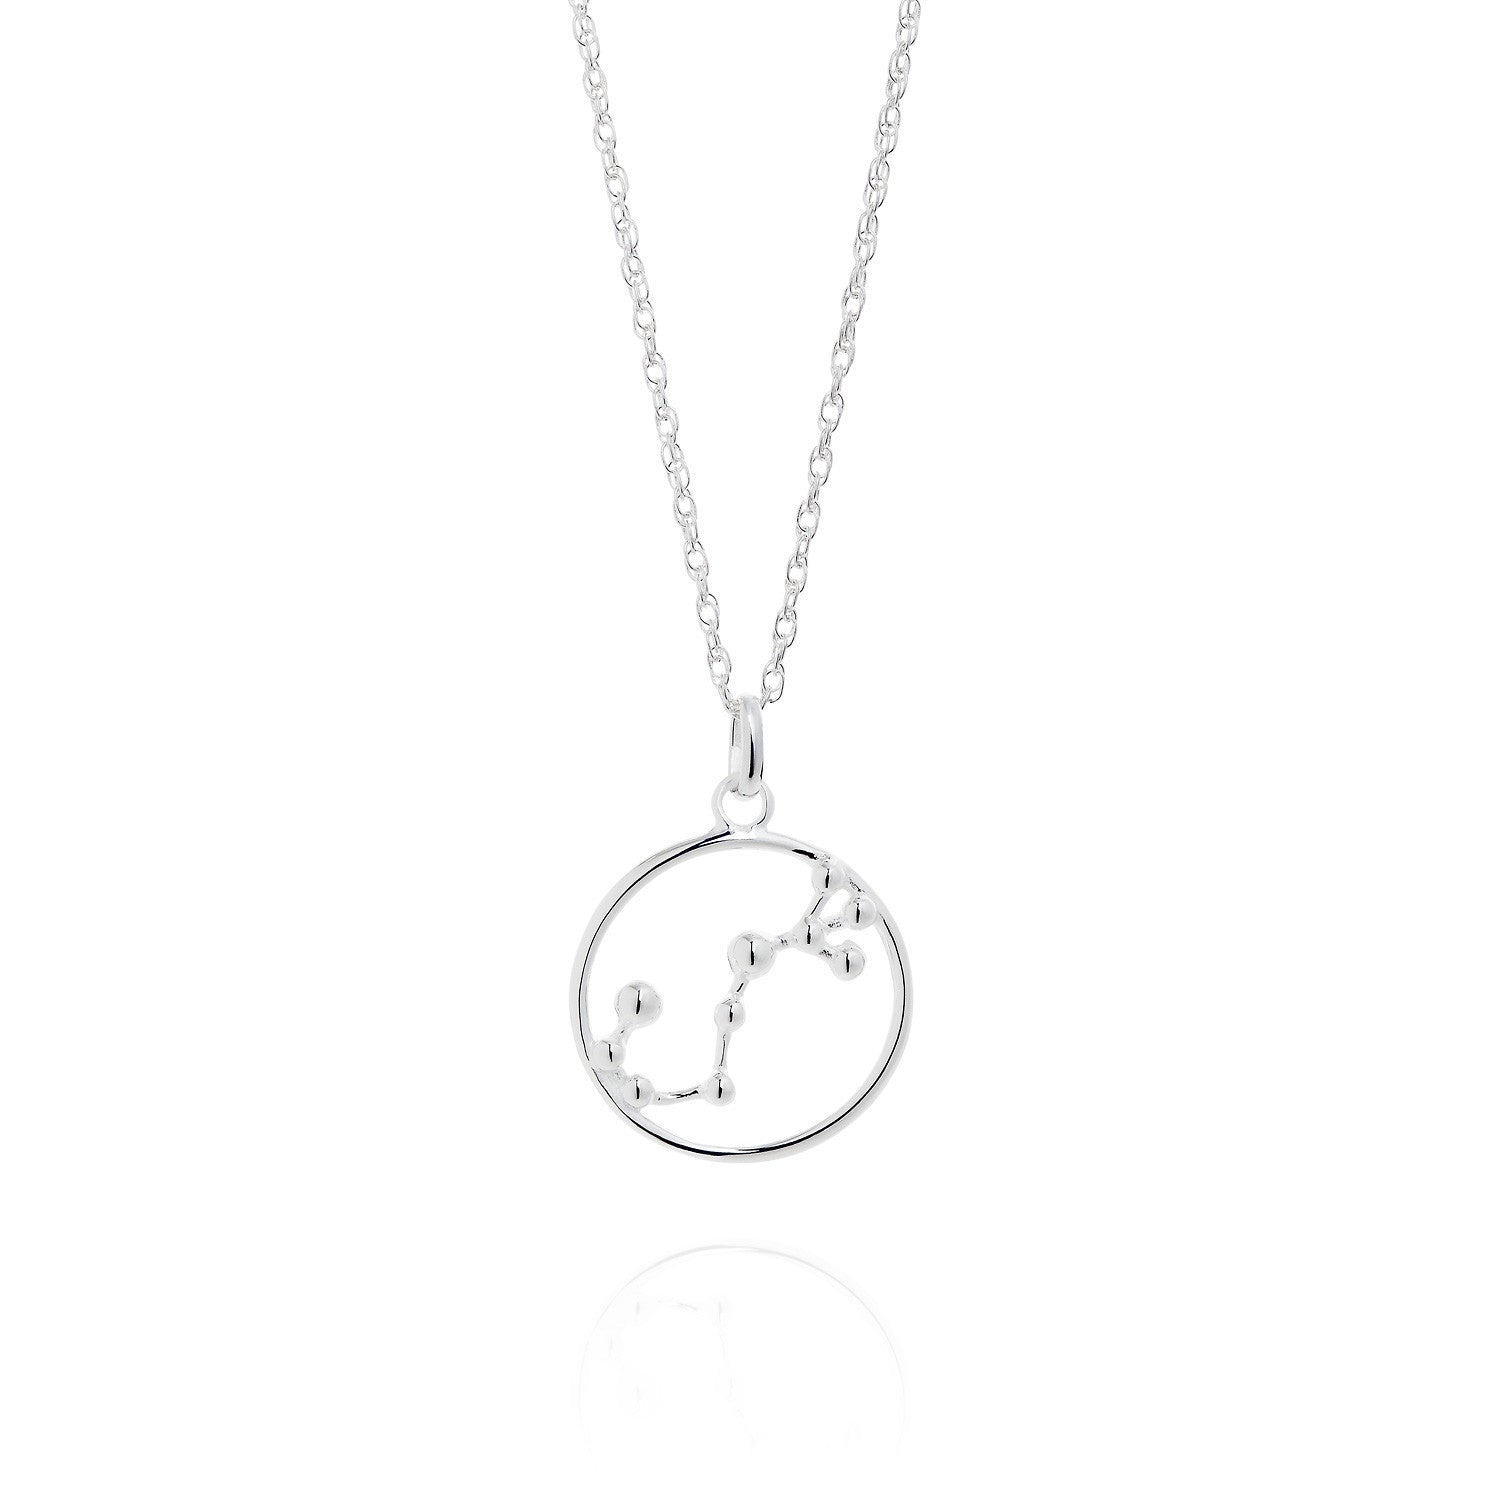 Scorpio star sign astrology Necklace